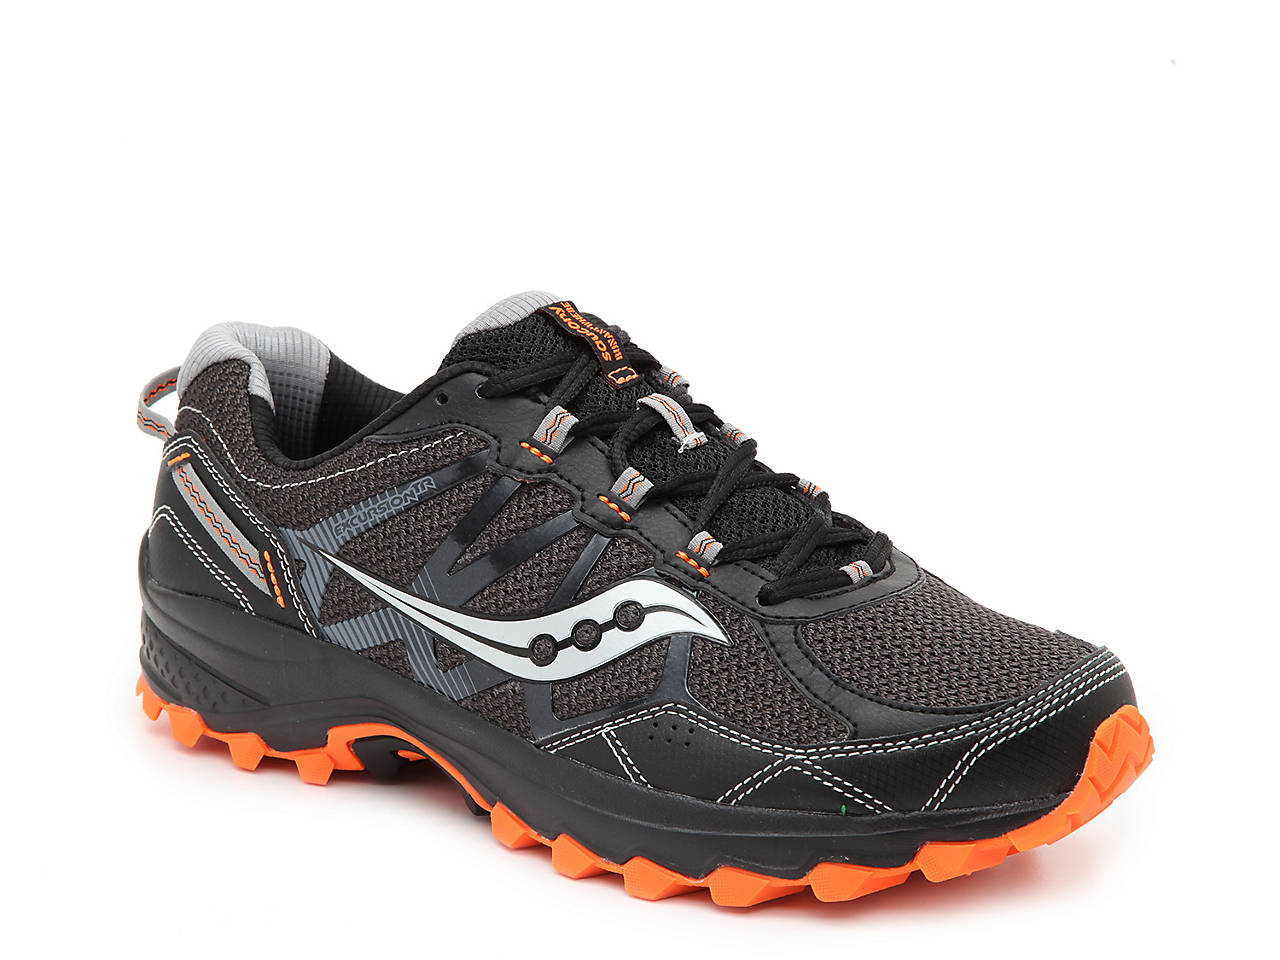 low priced 85f43 254d8 Excursion TR 11 Trail Running Shoe - Men's